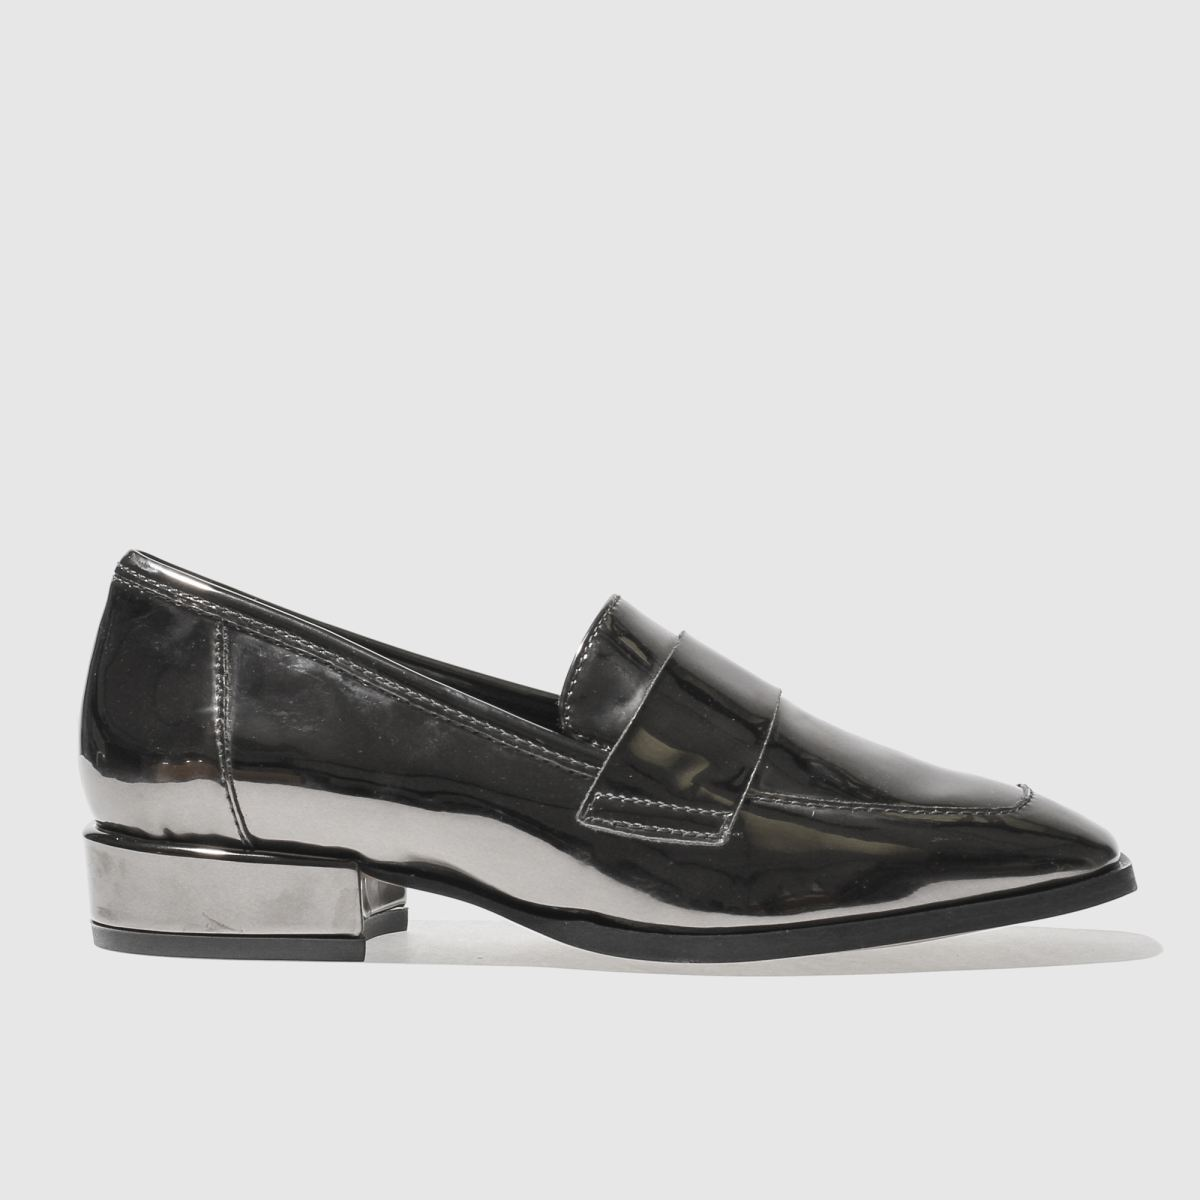 schuh Schuh Pewter Believe Flat Shoes